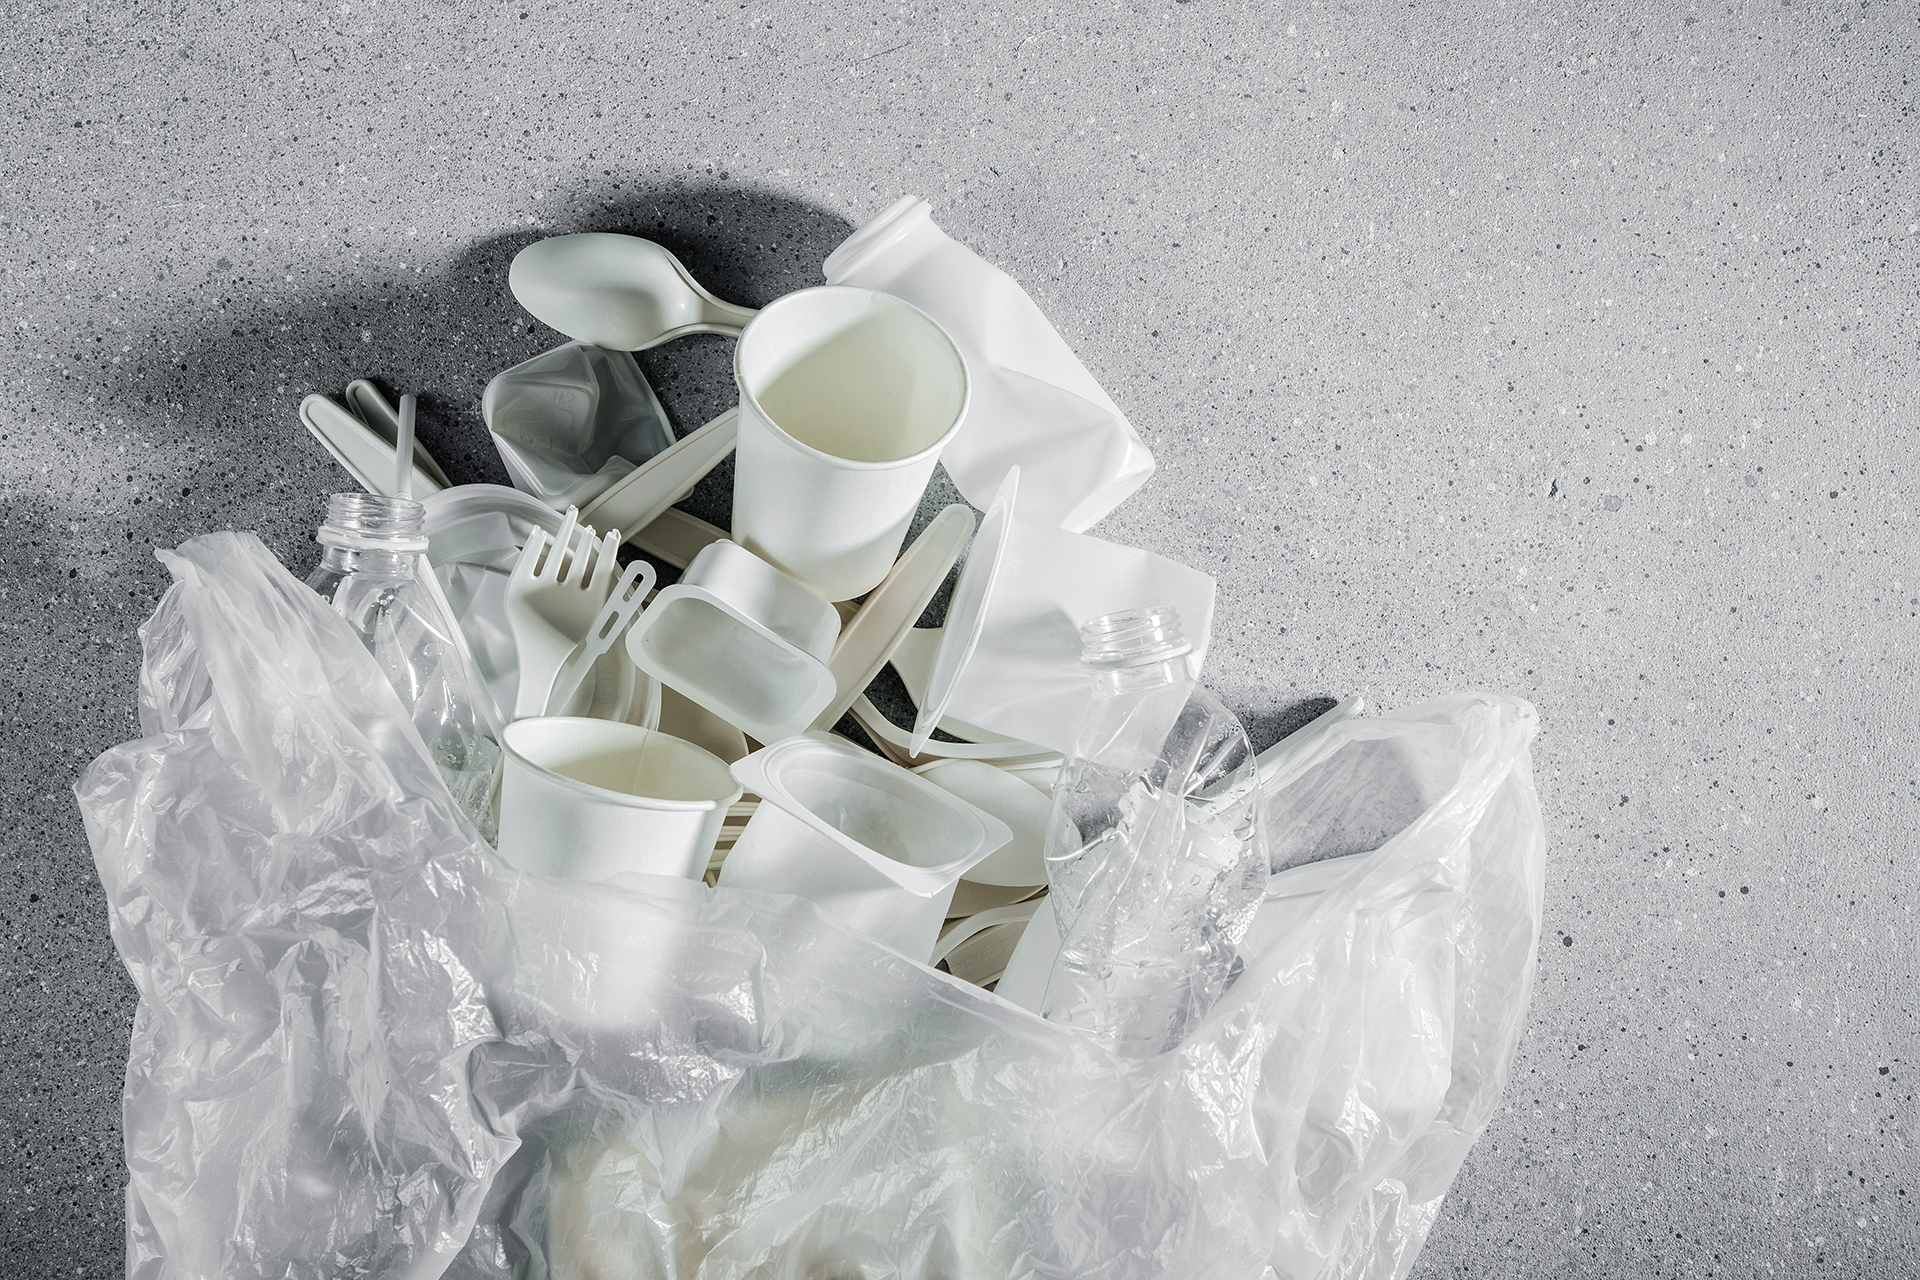 Different kinds of plastic garbage in plastic bag. Food plastic packaging on light background. Concept of Recycling plastic and ecology. Flat lay, top view